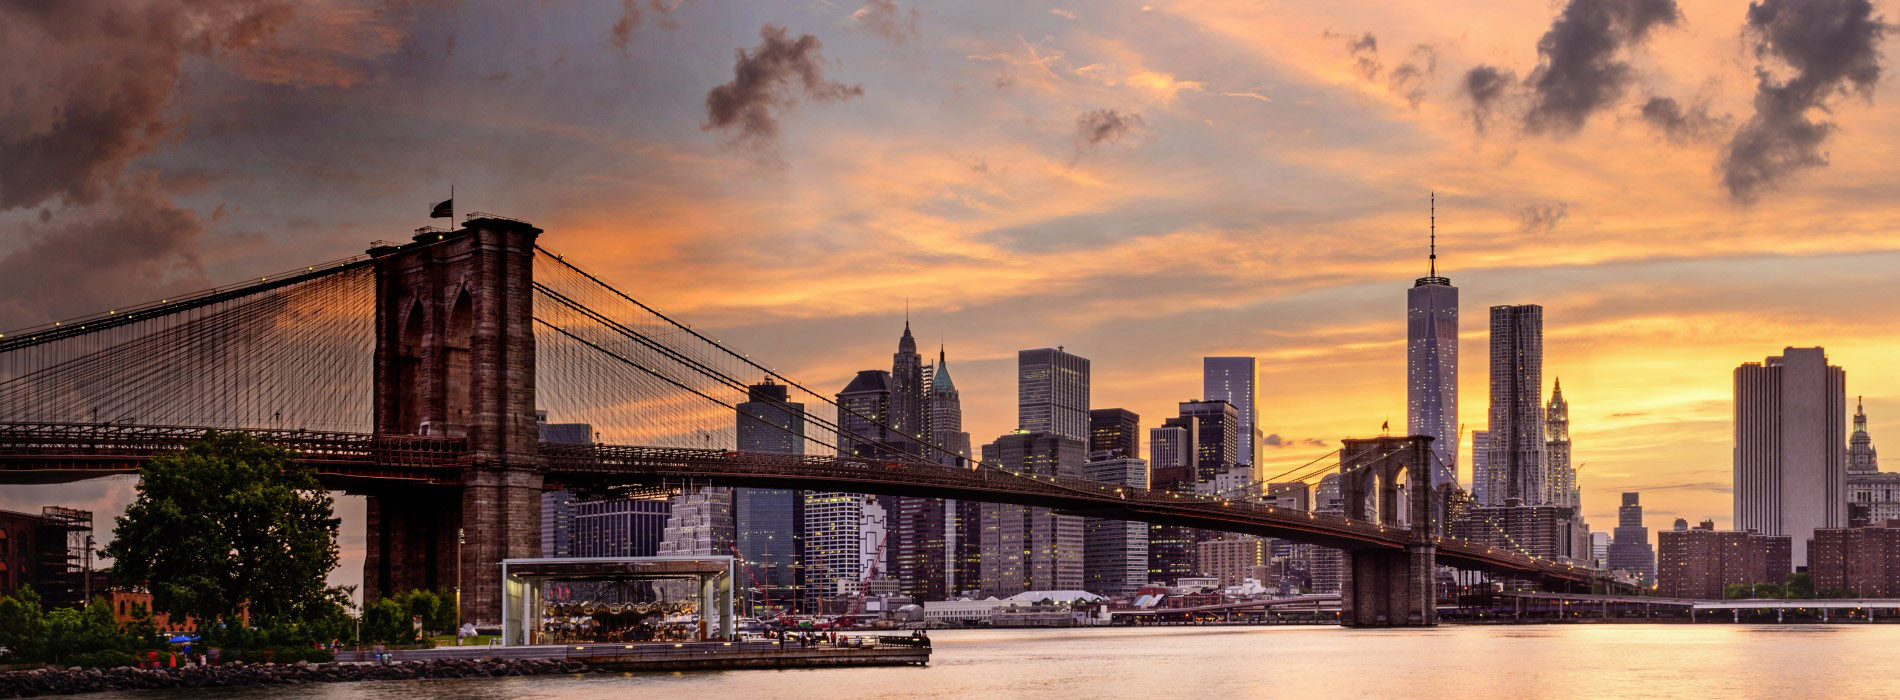 Brooklyn Bridge spanning water and New York skyline at sunset behind.